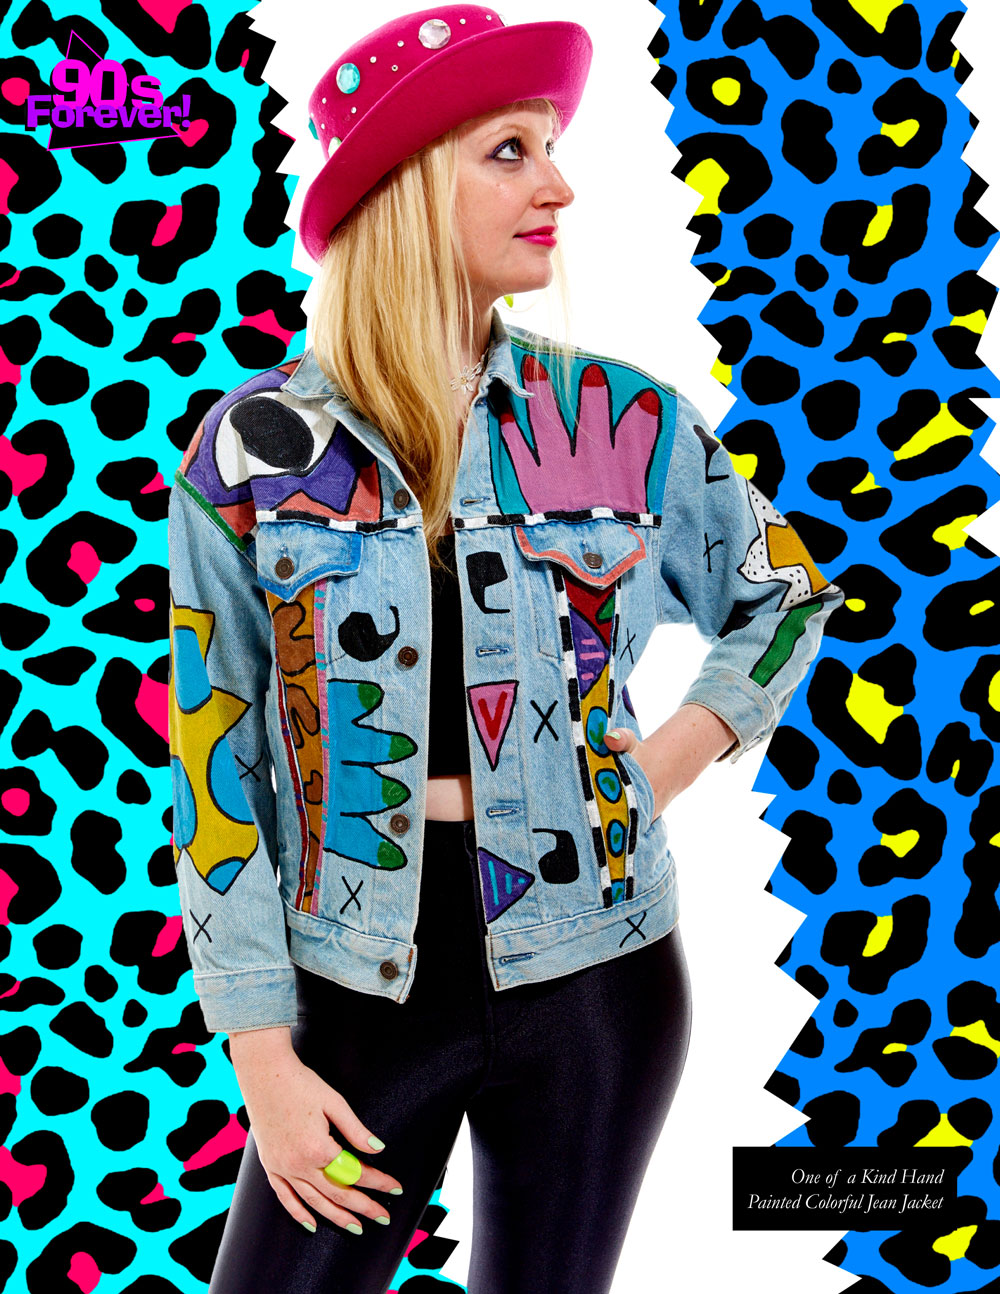 90s Forever Retro Vintage Fashion Apparel Lookbook - One of a Kind Hand Painted Colorful Jean Jacket